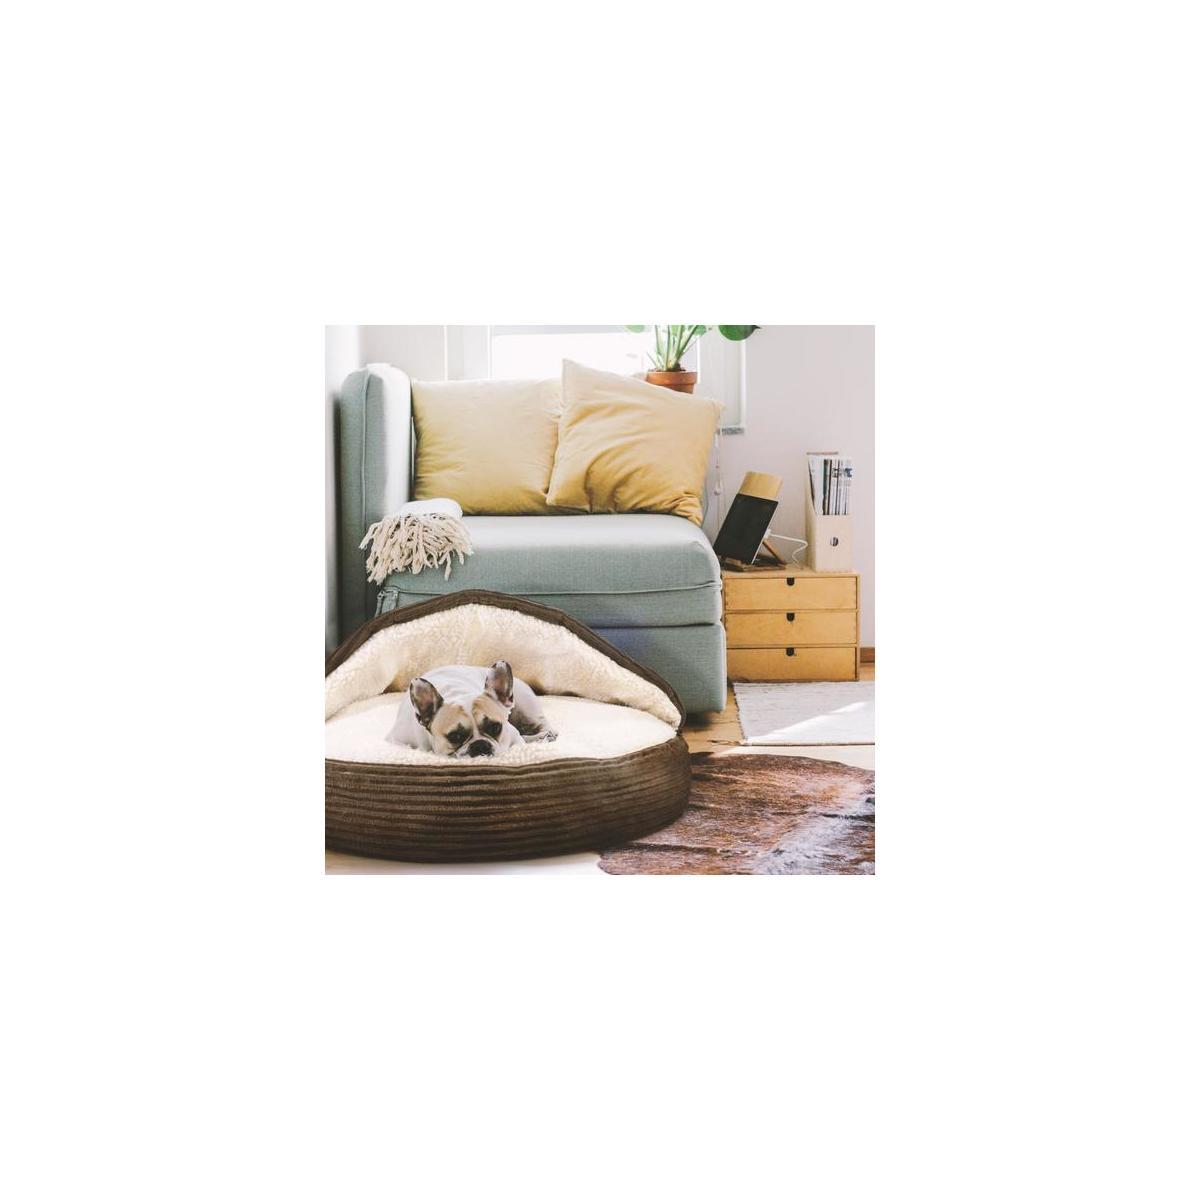 Arthritis Dog bed. Cat arthritis bed. Veterinarian designed Dog bed arthritis sufferers. Also an anxiety dog bed. Used as calming dog beds for small dogs. Cat anxiety bed.